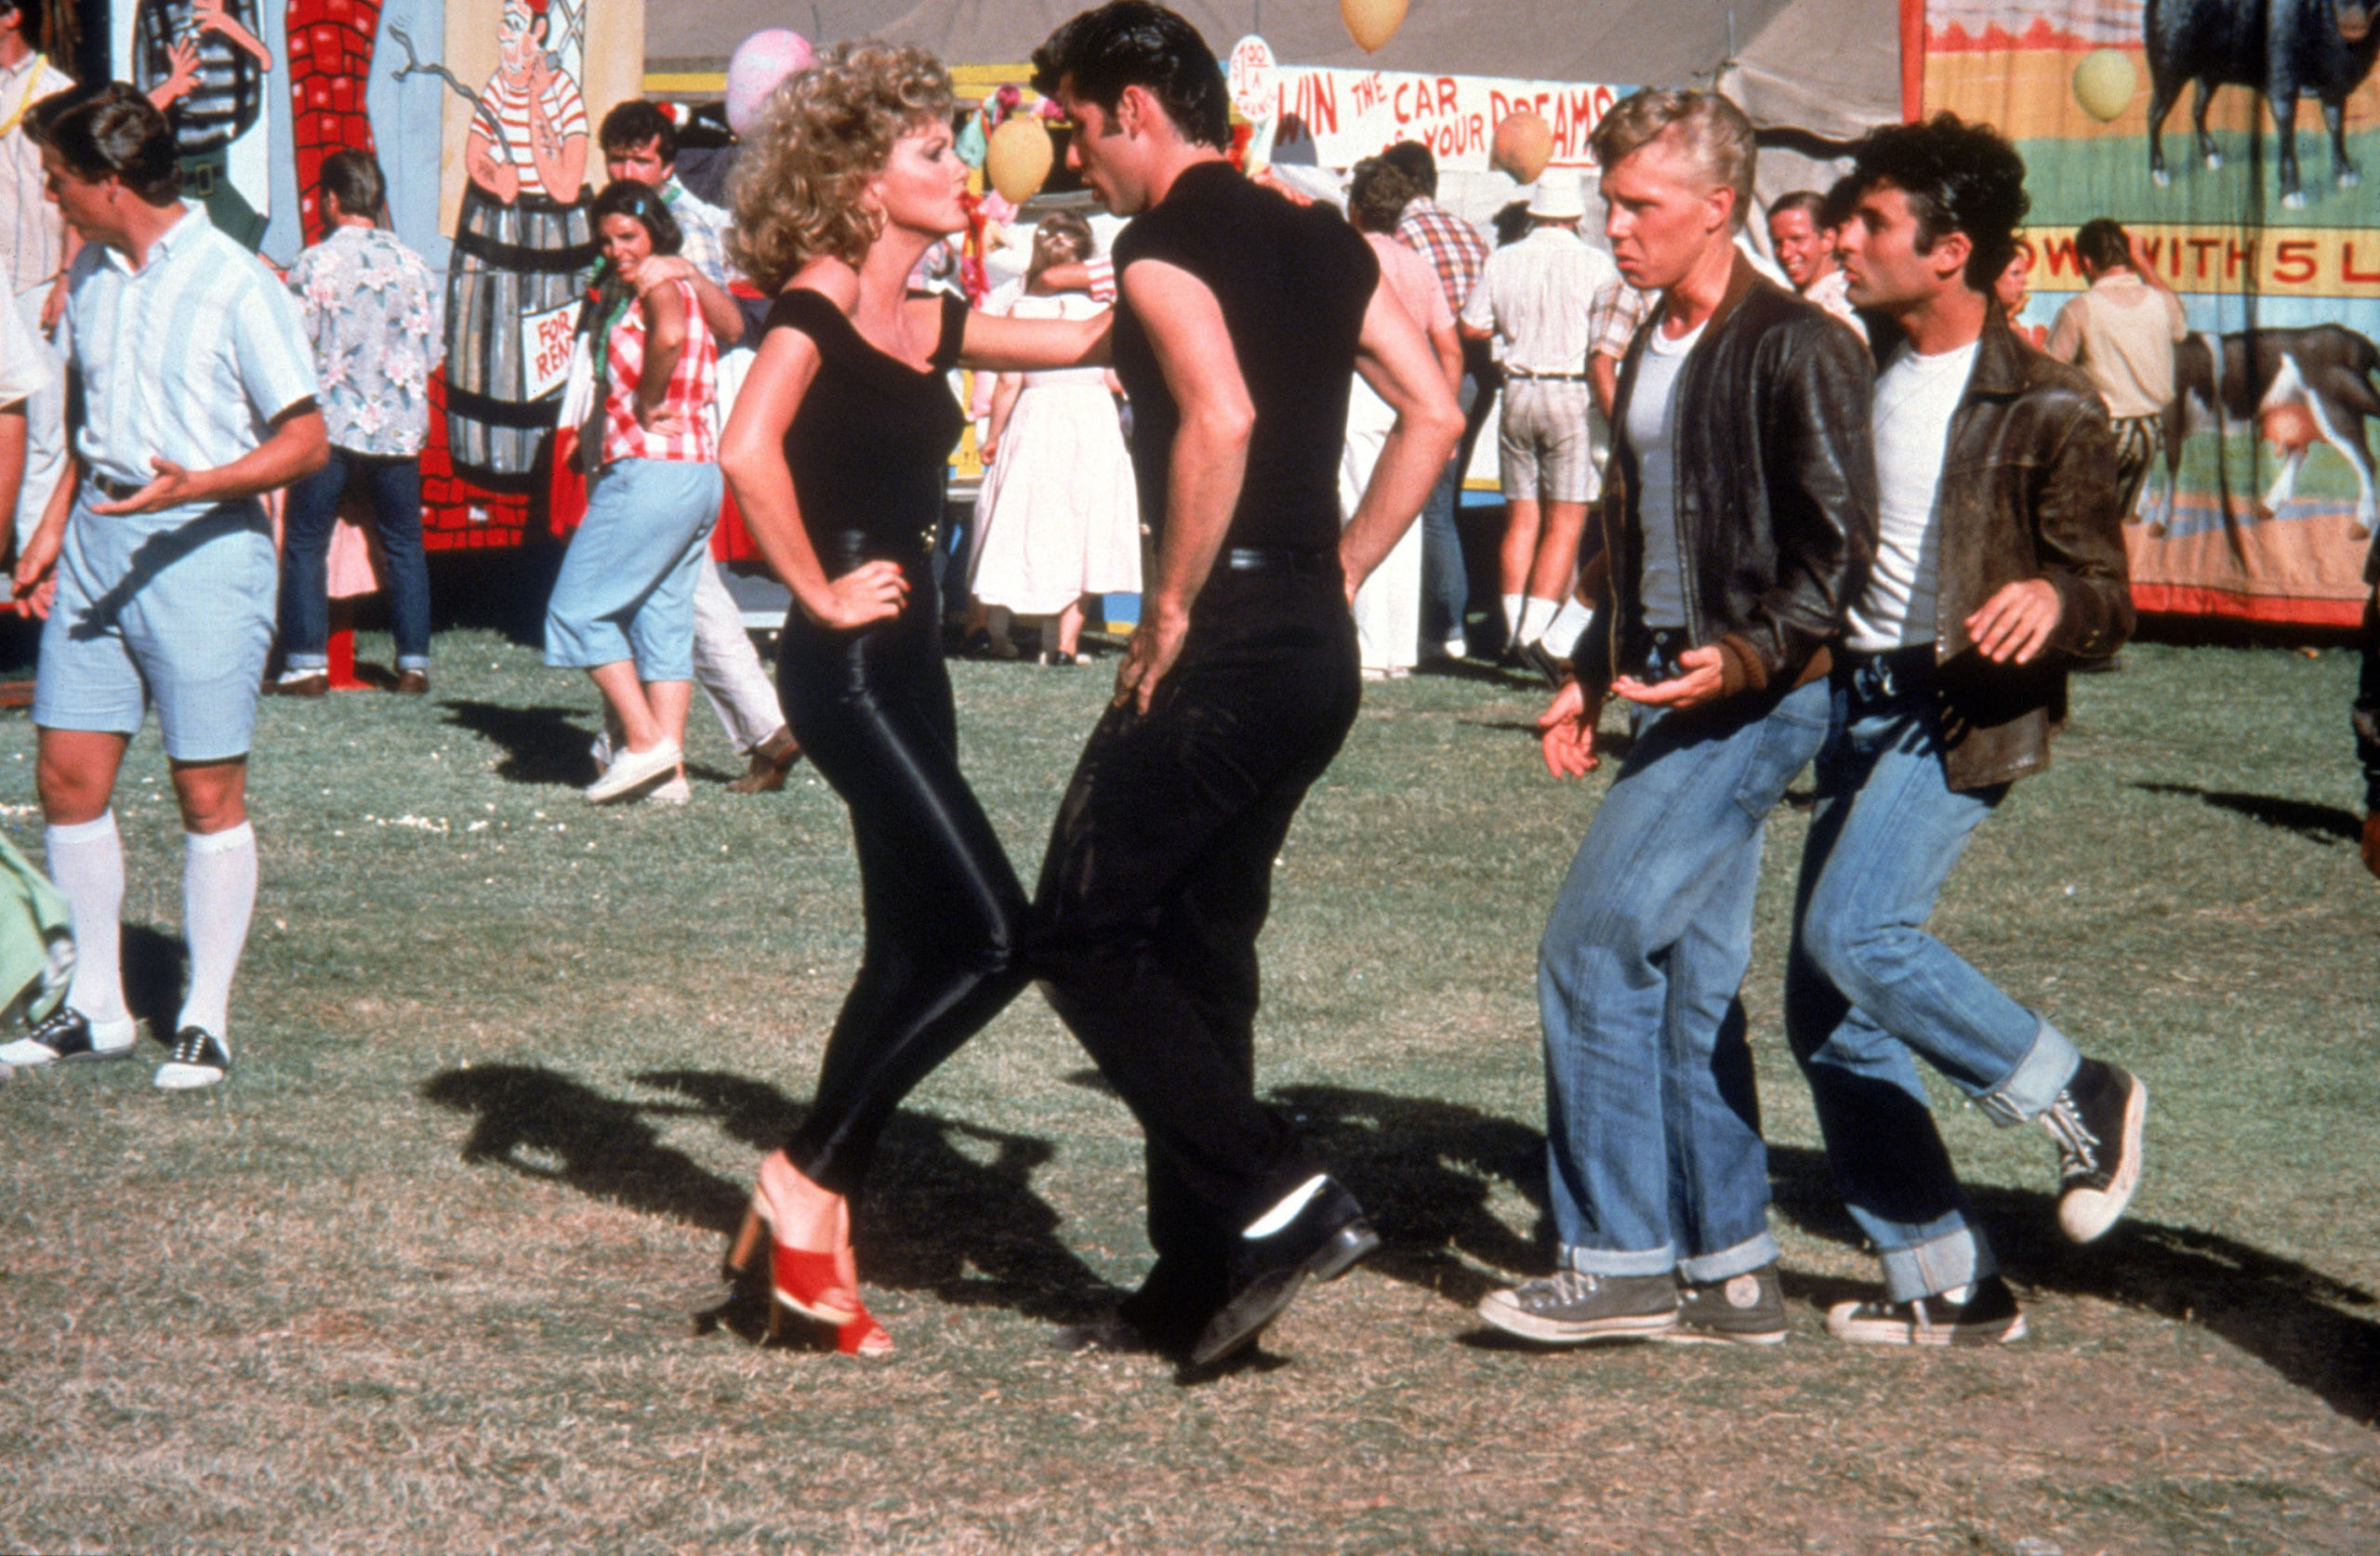 TM & Copyright (C) 1977,1998 by Paramount Pictures. All Rights Reserved.Grease is a trademark of Paramount Pictures. All Rights Reserved.TM, (R) & Copyright (C) 2013 by Paramount Pictures. All Rights Reserved.